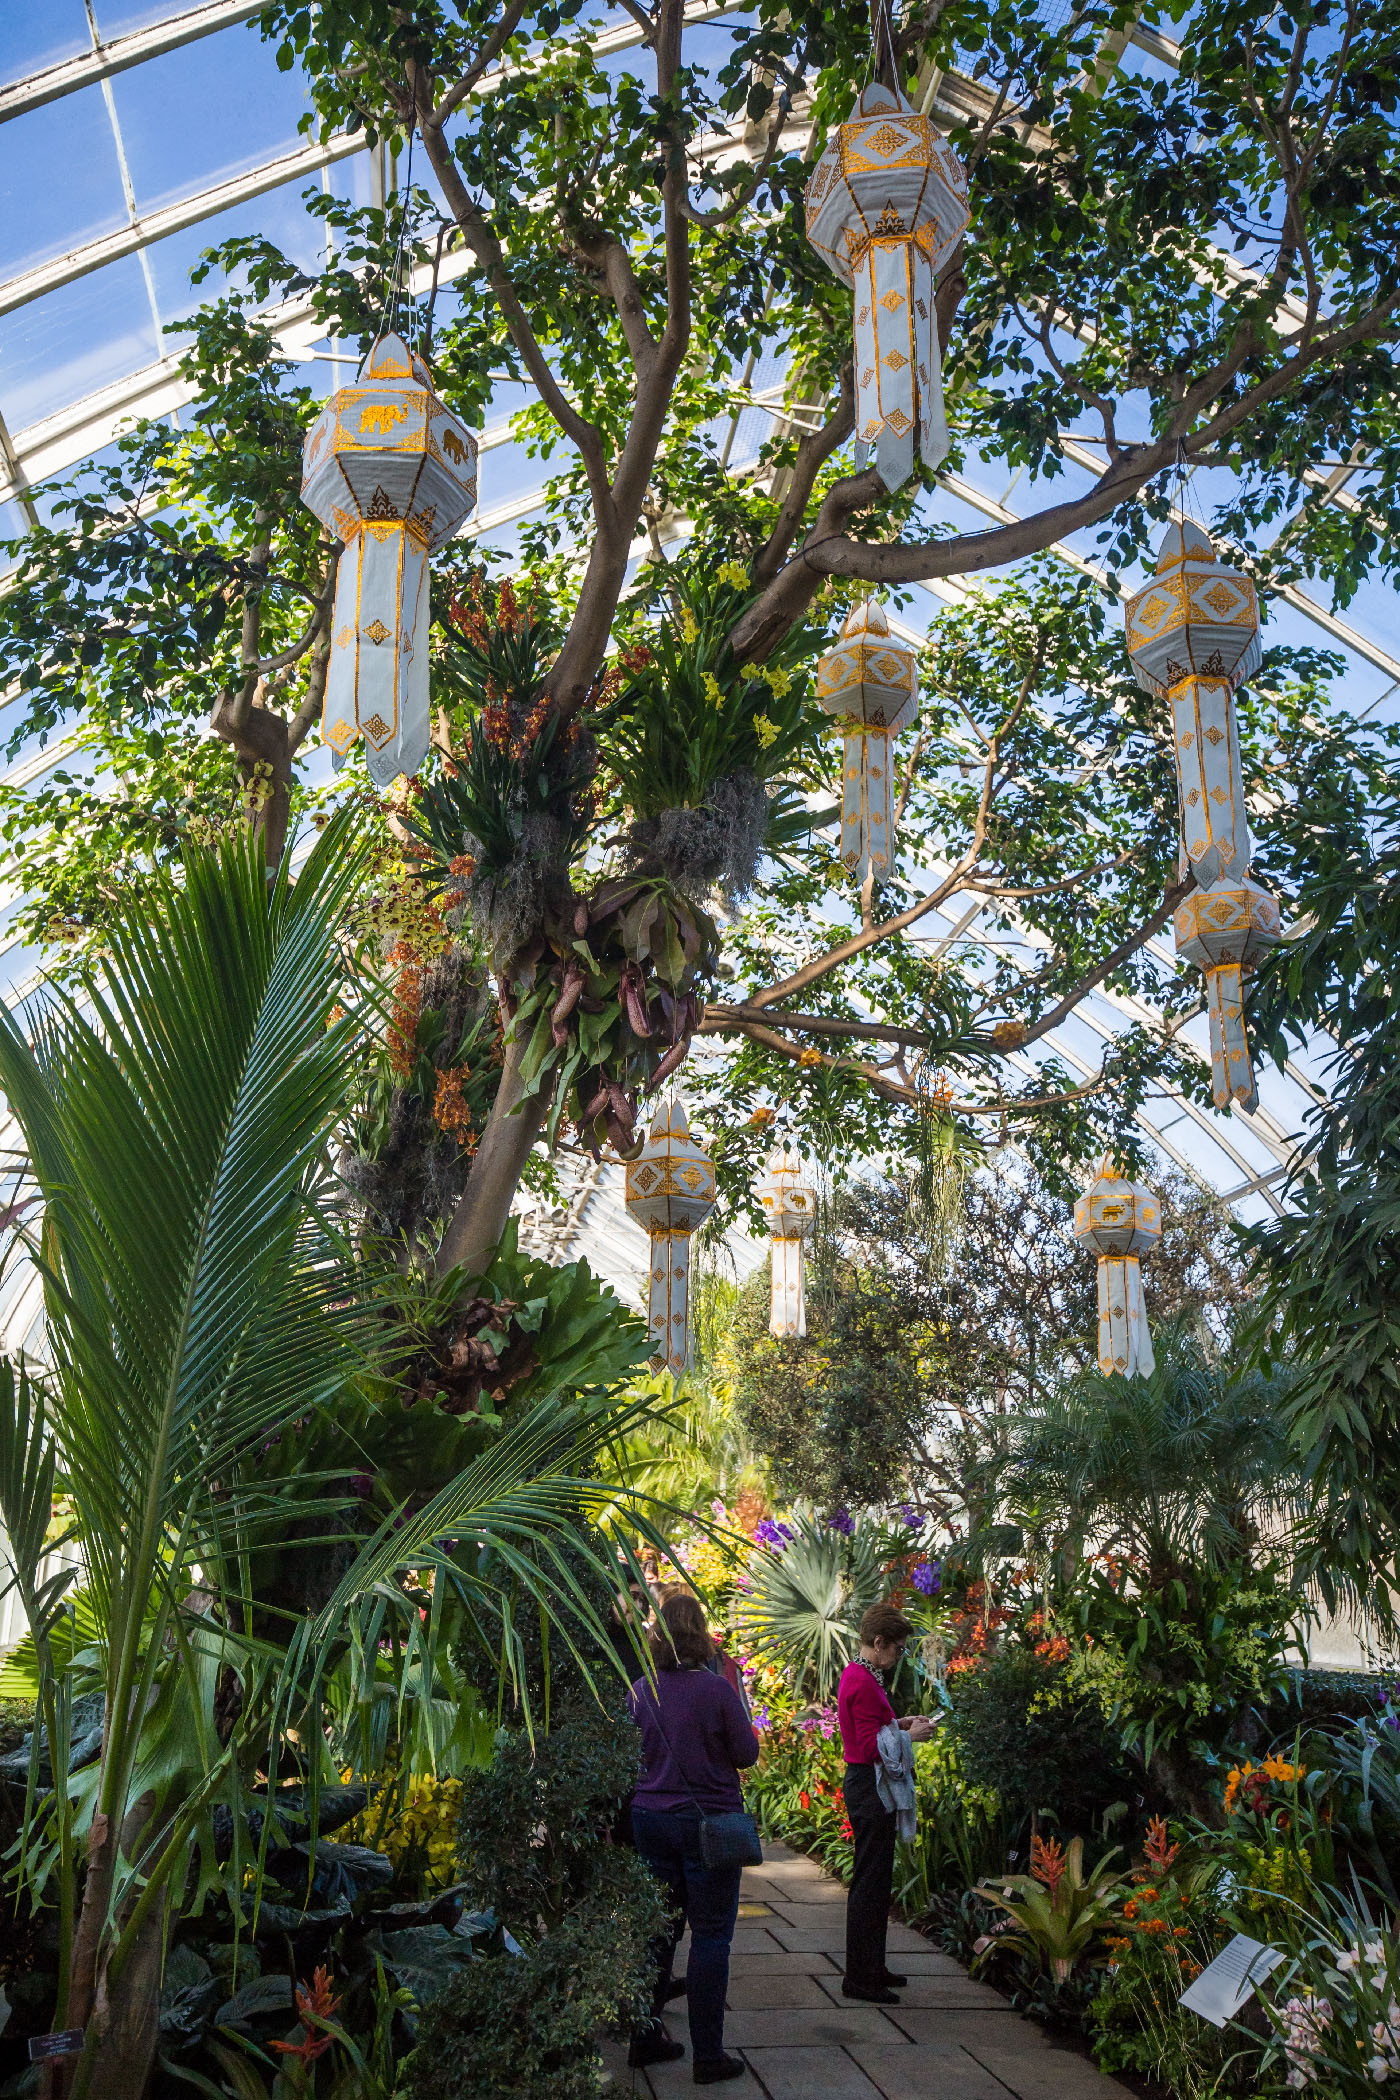 NYBG_The_Orchid_Show_2017_09 Palm Tree Garden Design on pink garden design, palm thai restaurant los angeles, simple house garden design, sand garden design, dragon garden design, earth garden design, fruit garden design, palm trees tampa bay, lotus garden design, dragonfly garden design, hibiscus garden design, maple tree garden design, tiger garden design, rose garden design, autumn garden design, idea yard garden design, pumpkin garden design, arizona garden design, christmas tree garden design, southern living garden design,